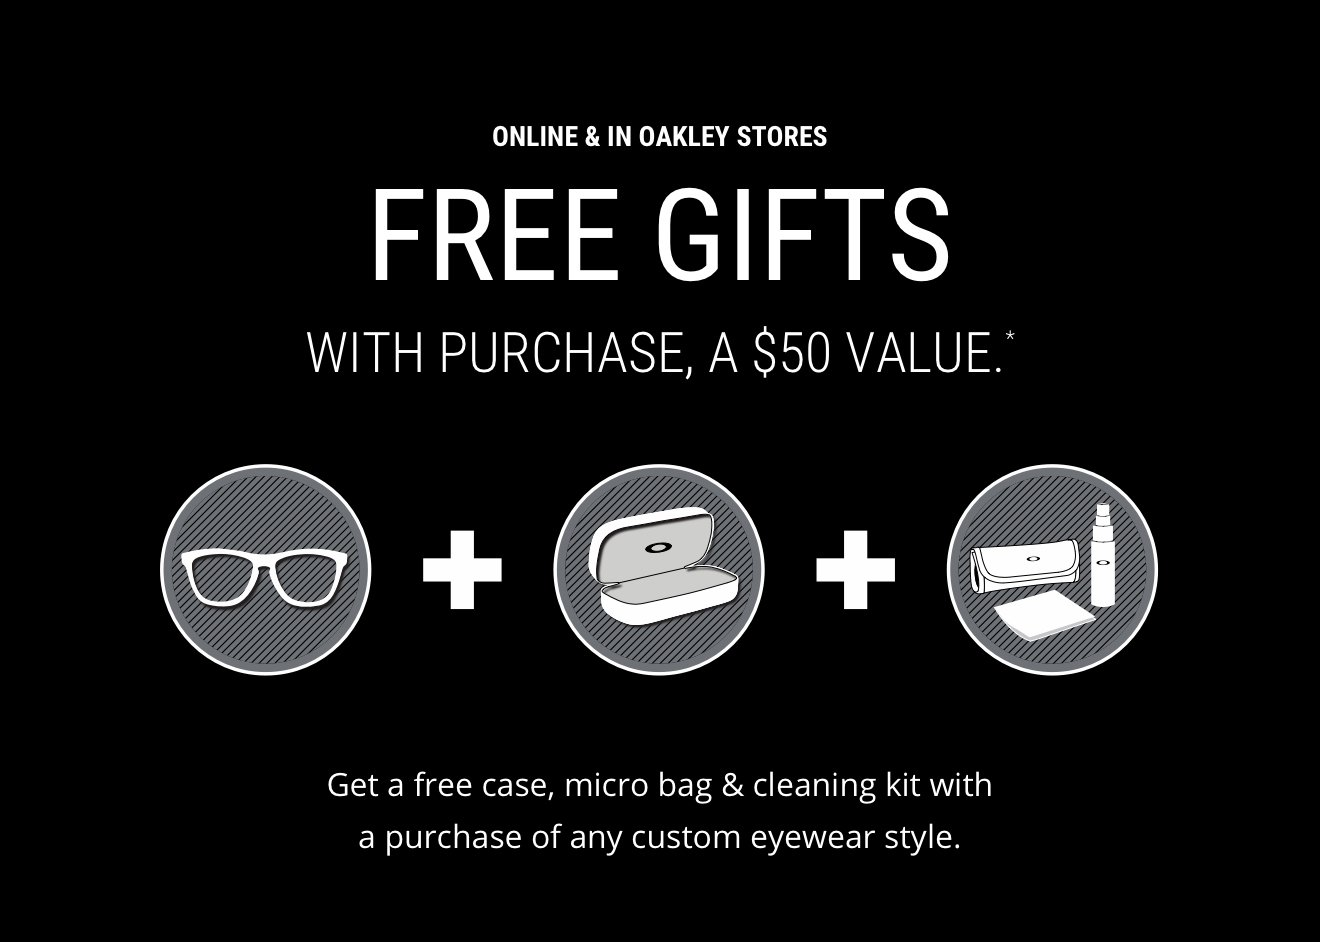 FREE GIFTS WITH PURCHASE, A $50 VALUE*